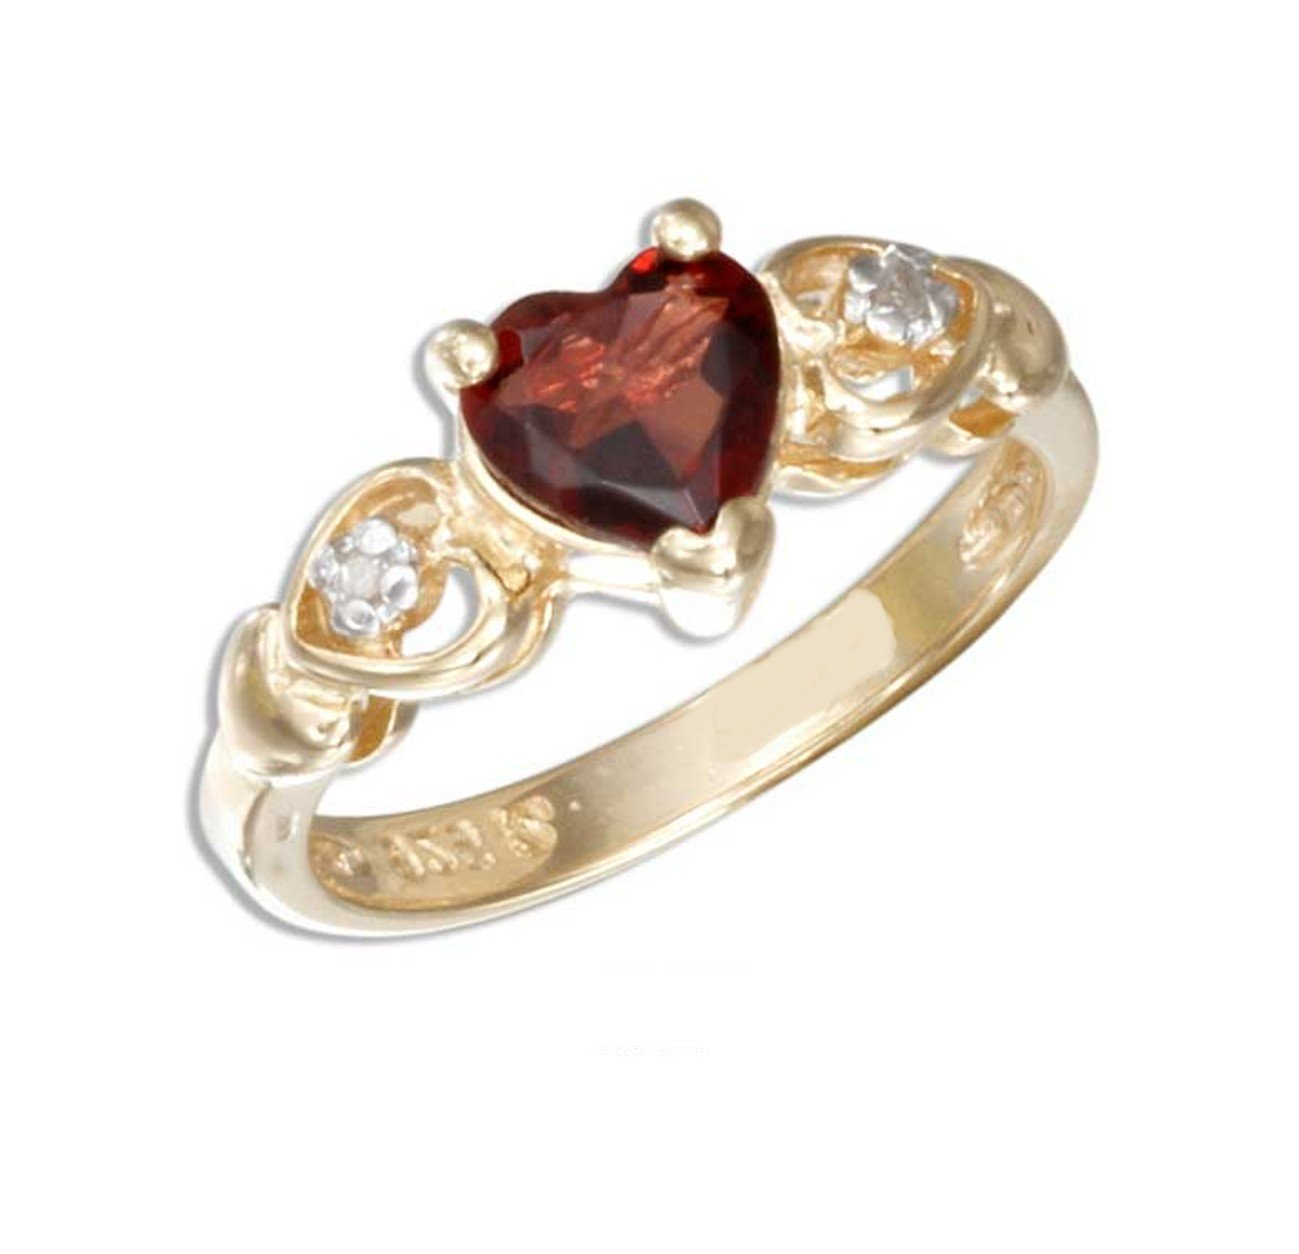 Adorable 18 KT gold vermeil ring with a garnet heart and diamond accent stones size 5